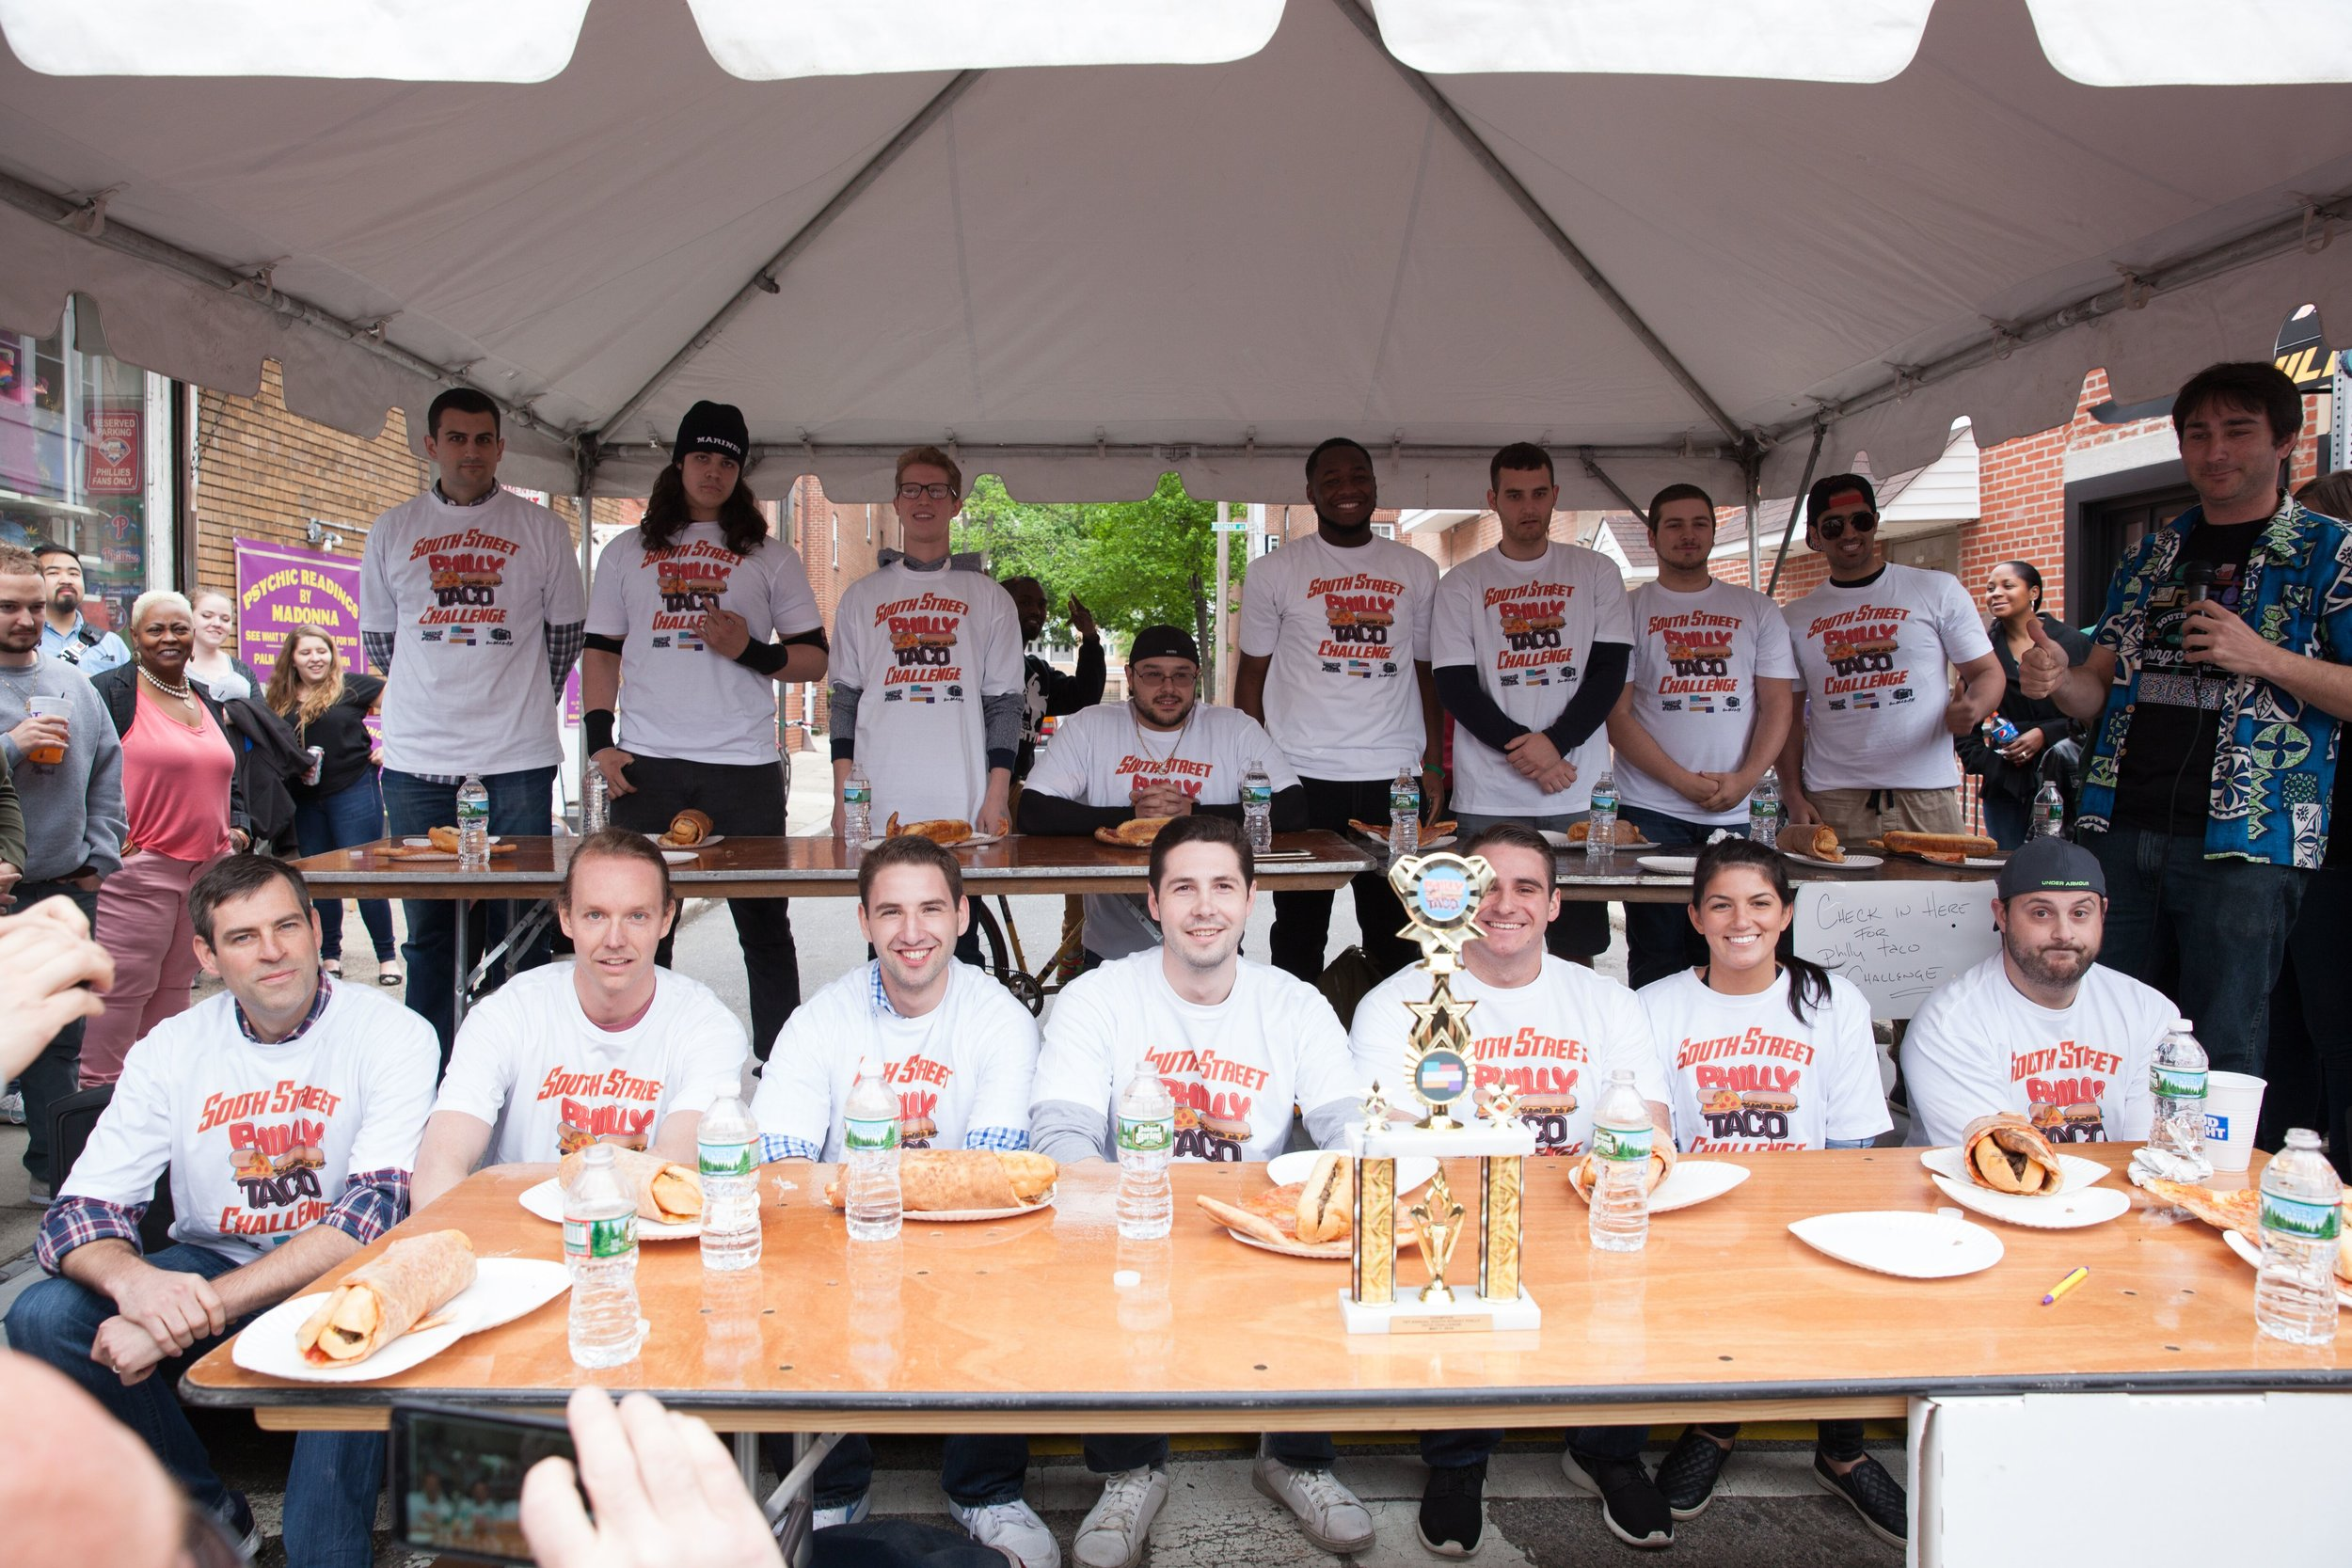 Philly Taco Eating Contest at South Street Spring Festival 2018